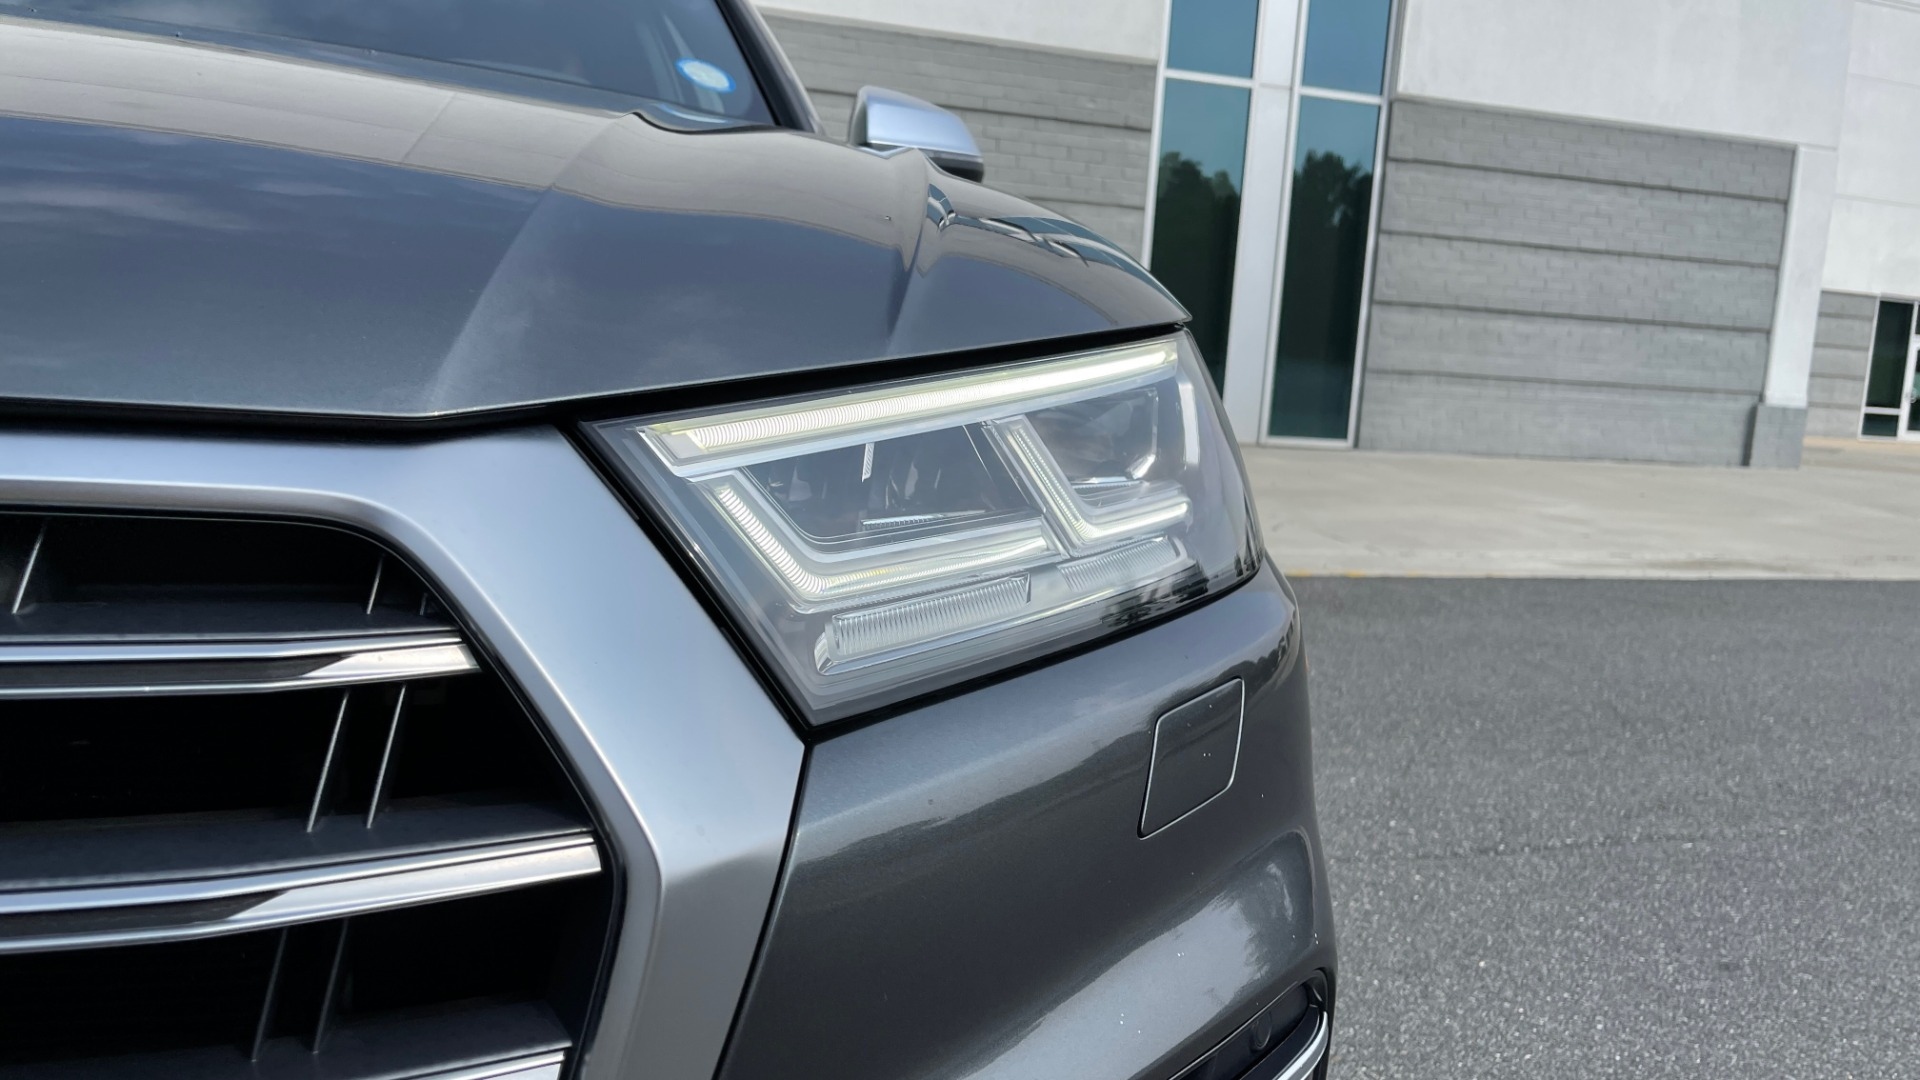 Used 2018 Audi SQ5 PREMIUM PLUS / S-SPORT / NAV / B&O SND / SUNROOF / REARVIEW for sale $43,995 at Formula Imports in Charlotte NC 28227 13